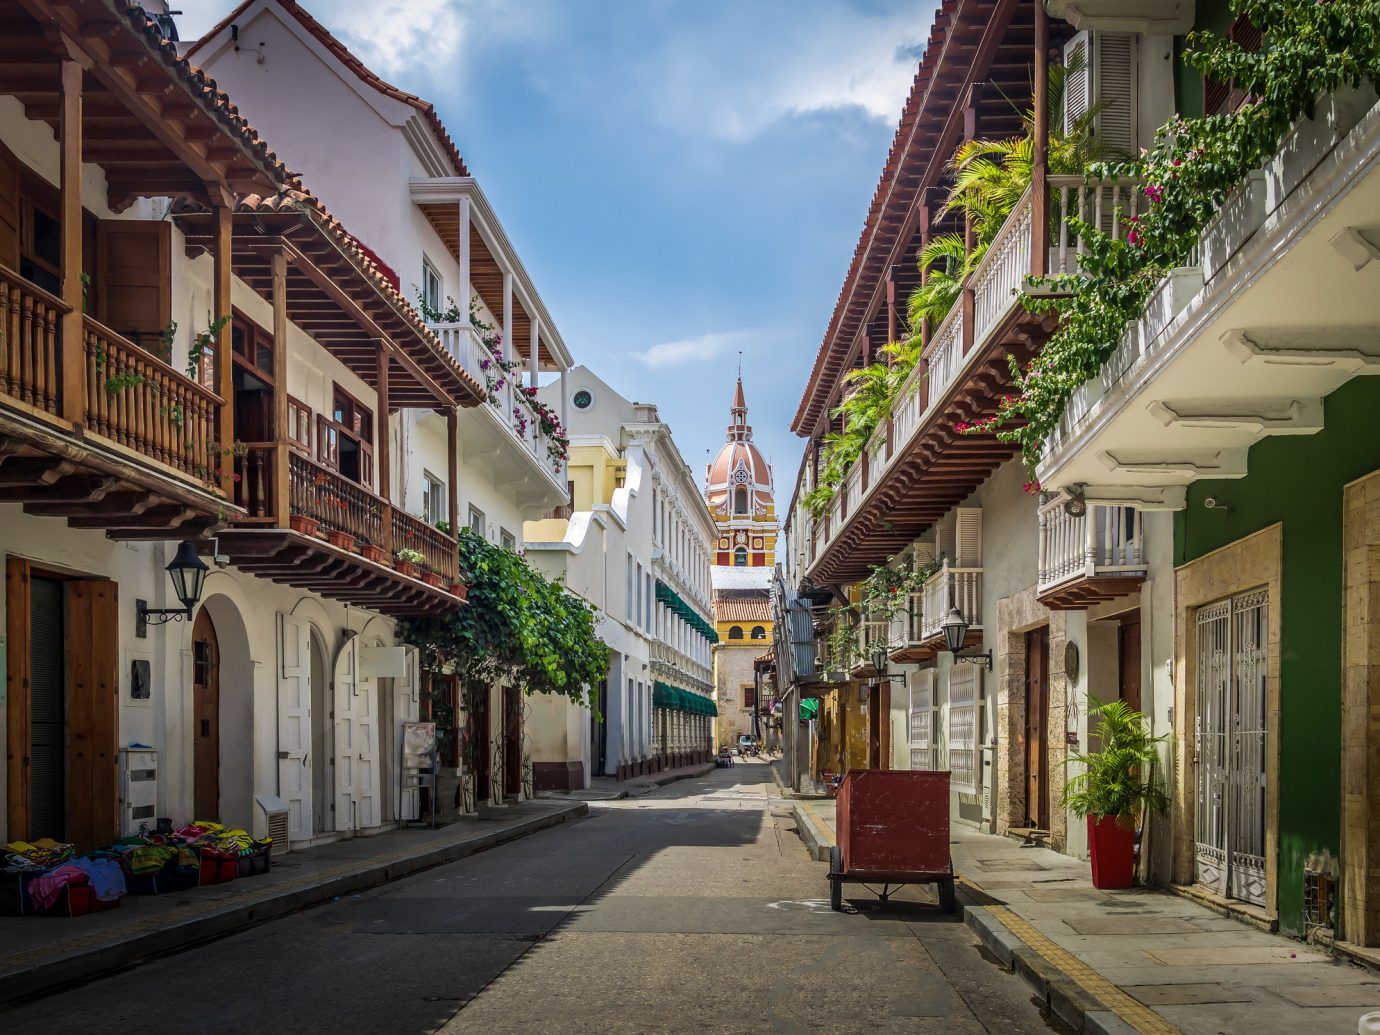 Offbeat Travel Tips building outdoor sky way scene Town neighbourhood sidewalk street road infrastructure residential area City house alley tree lane home real estate facade narrow mixed use Downtown window apartment residential stone